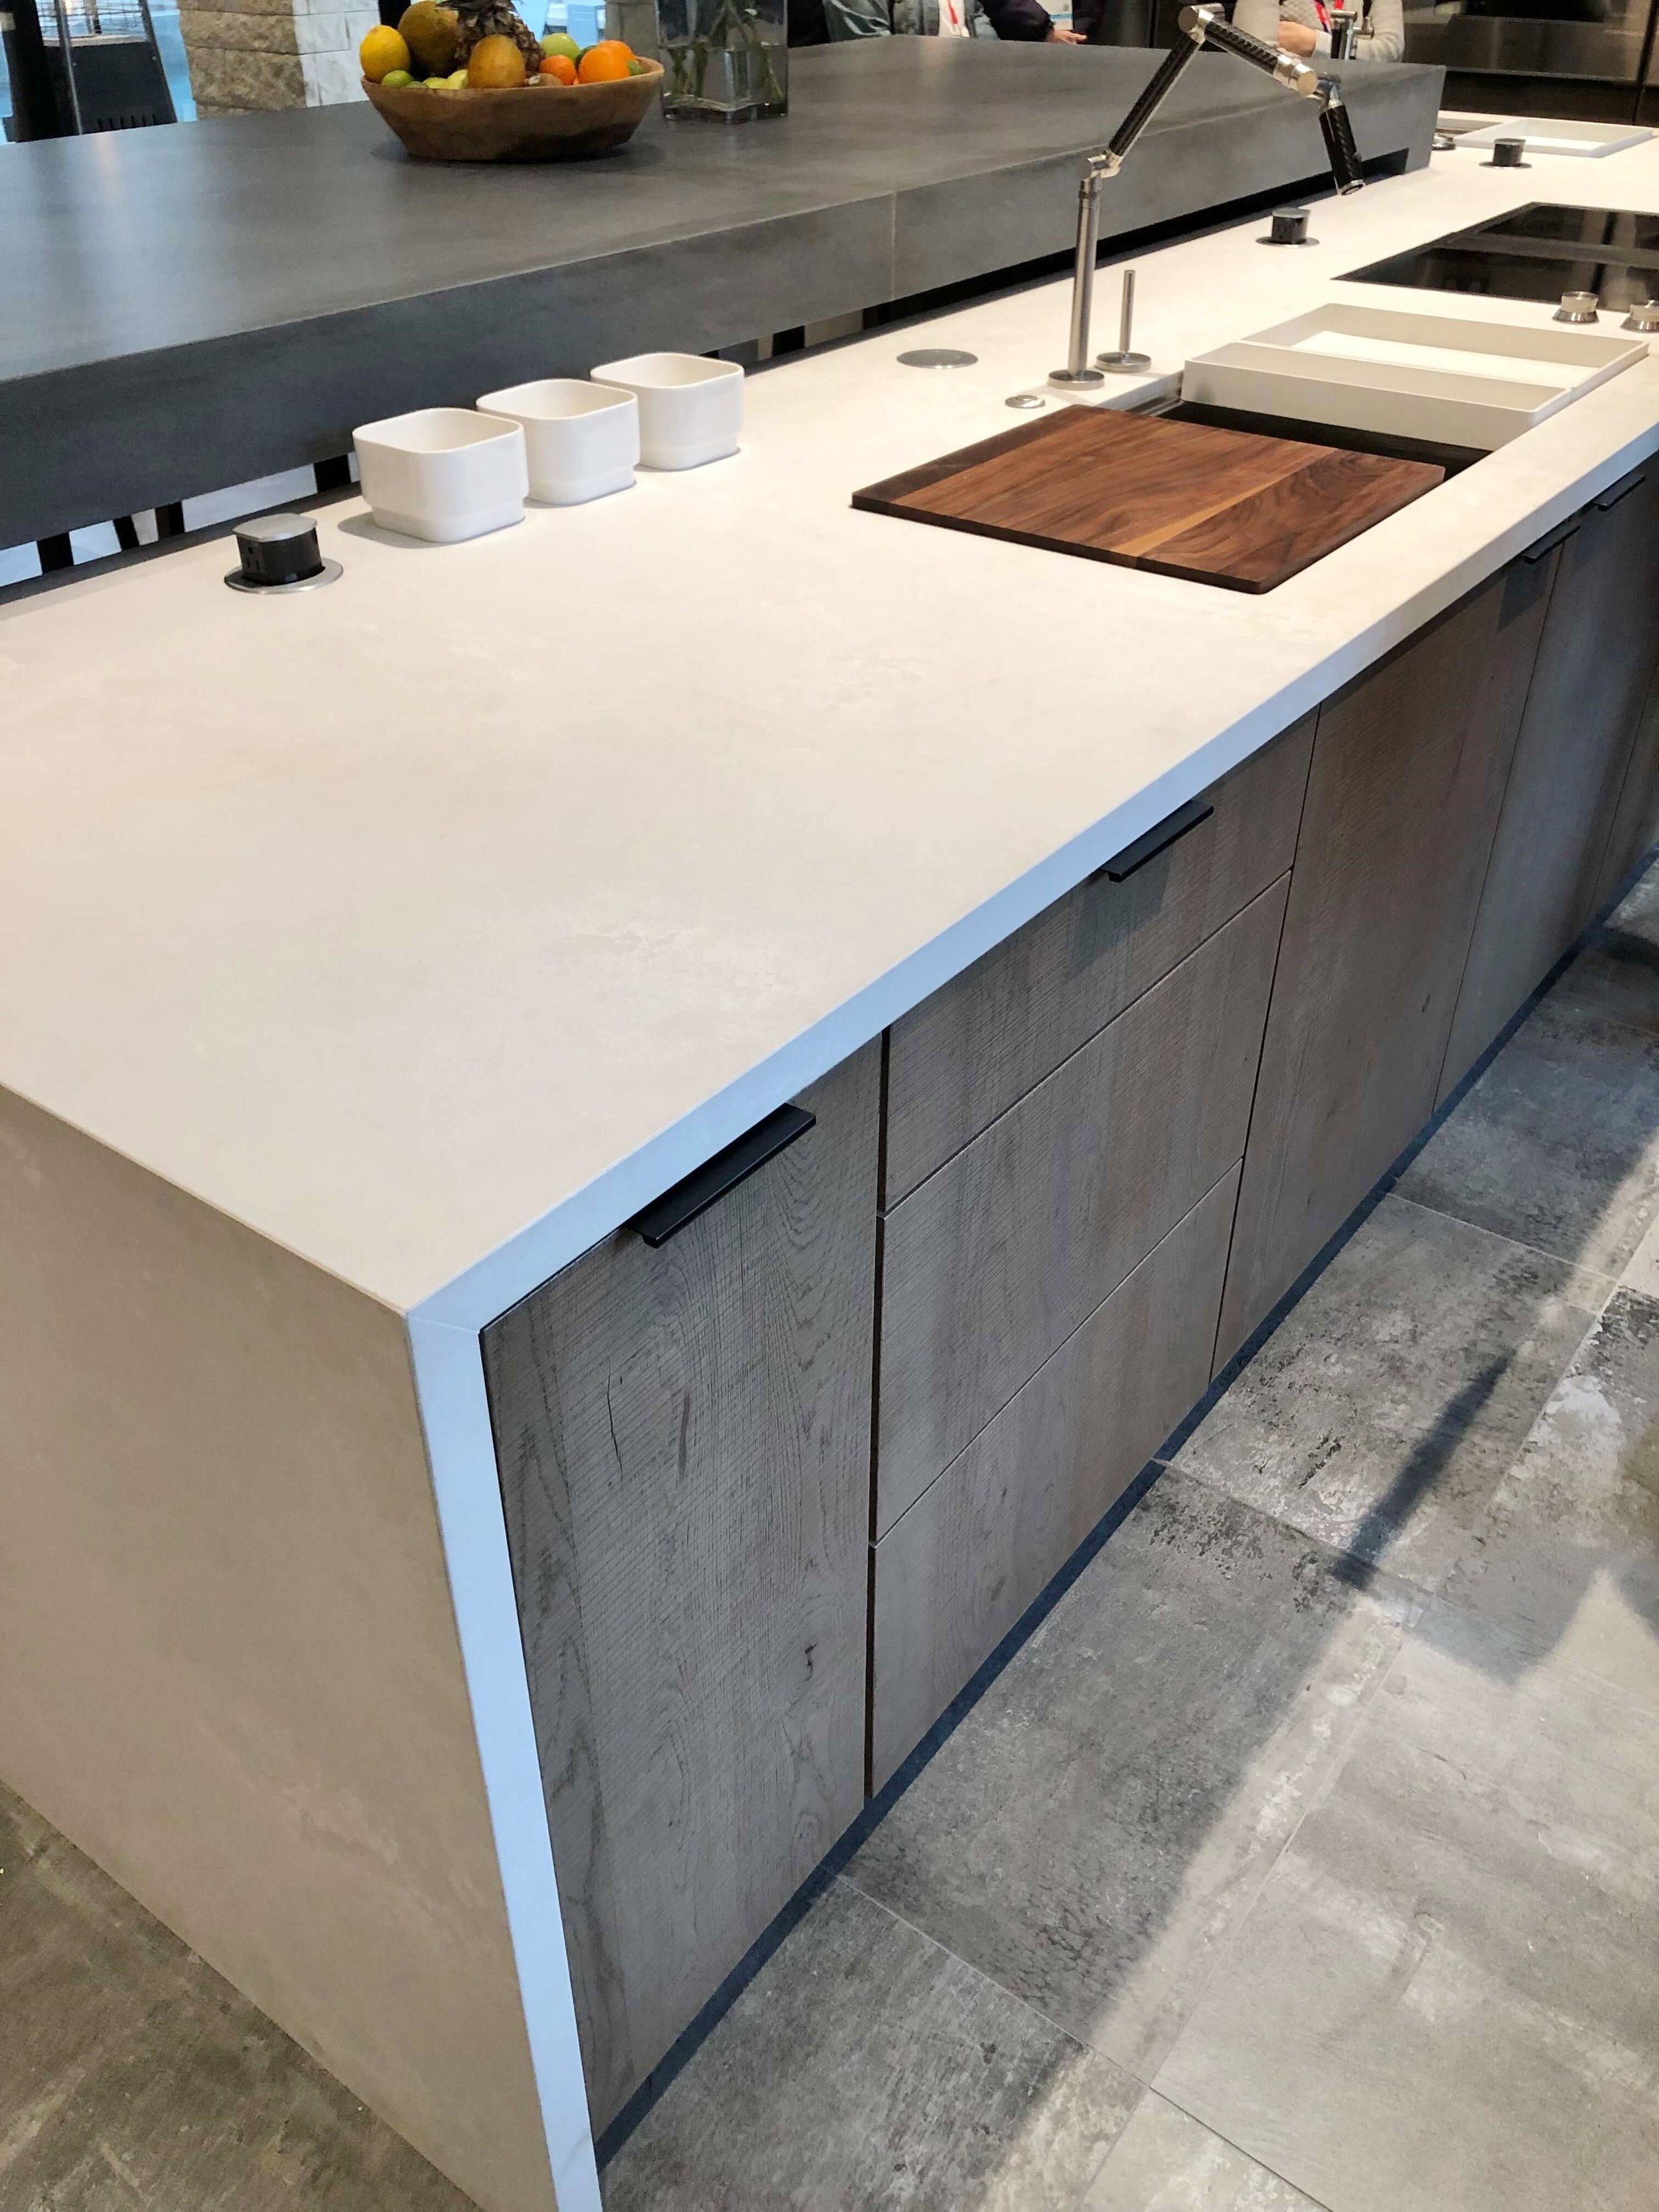 Thick kitchen countertops with waterfall edge on kitchen island at  The New American Remodel 2019 home tour.  #kitchencountertop #kitchendesign #kitchenisland